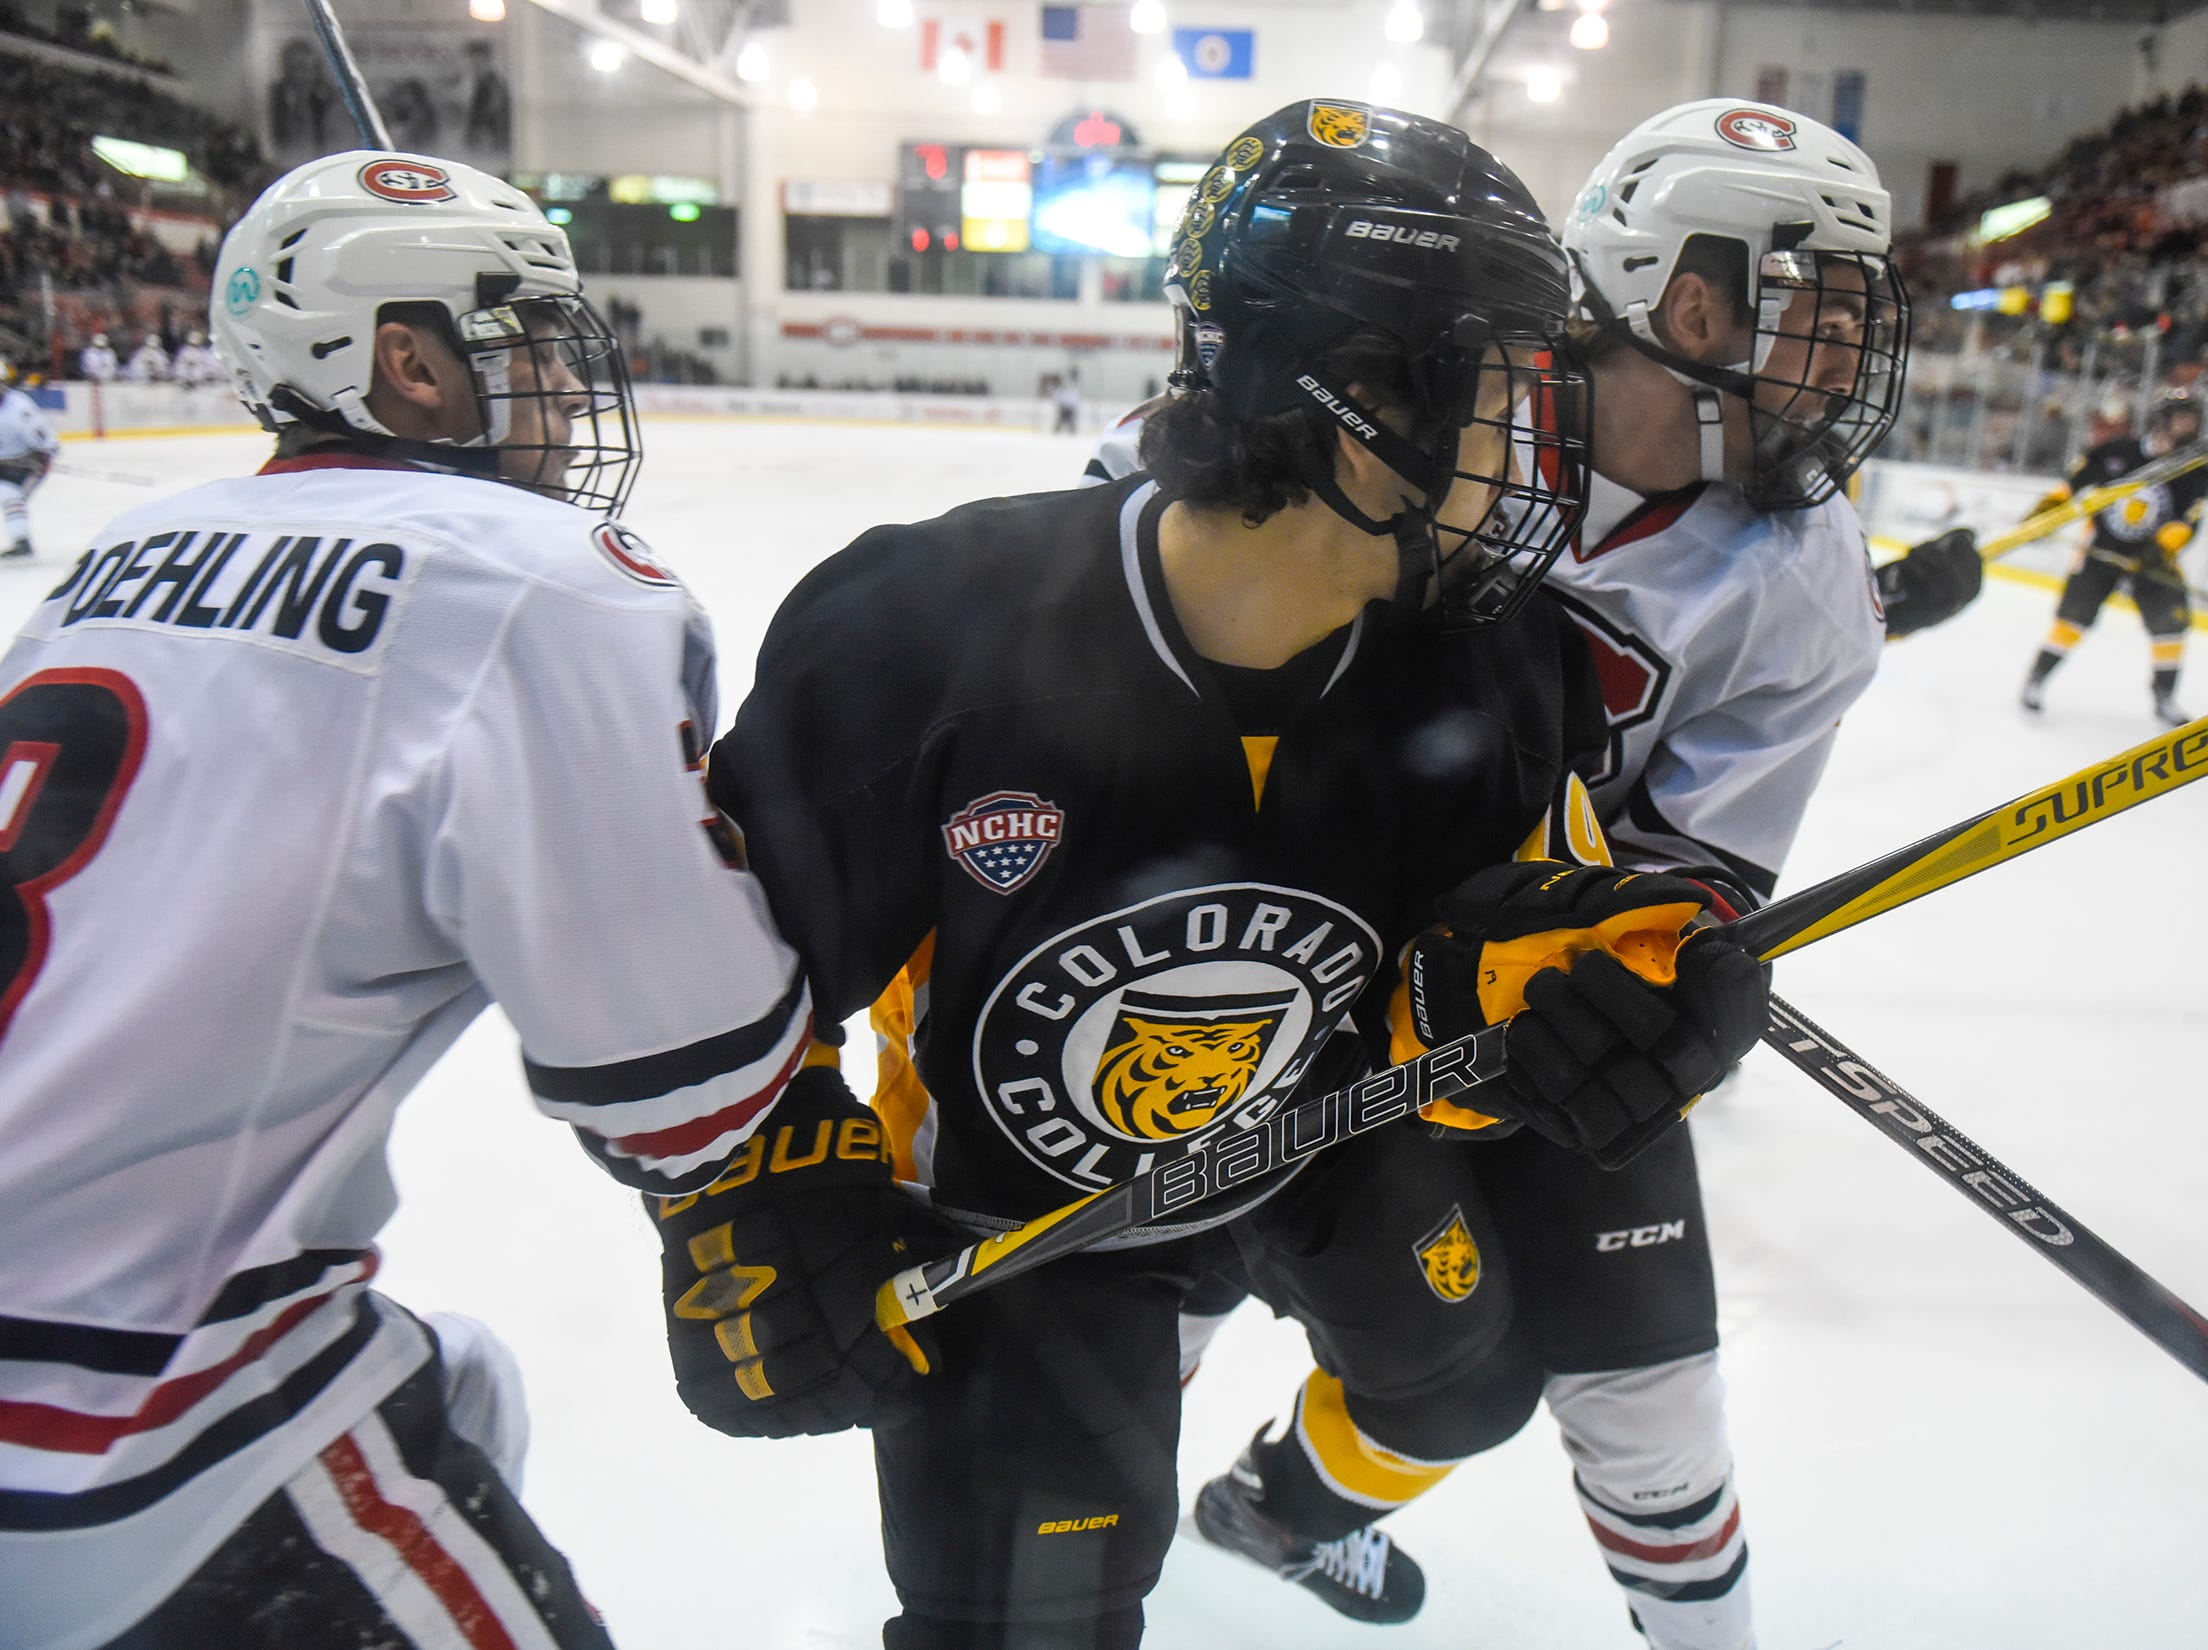 Troy Conzo of Colorado College is sandwiched between Jack Poehling and Nick Poehling 19, 3-7 during the first period of the Saturday, Feb. 9, game at the Herb Brooks National Hockey Center in St. Cloud.